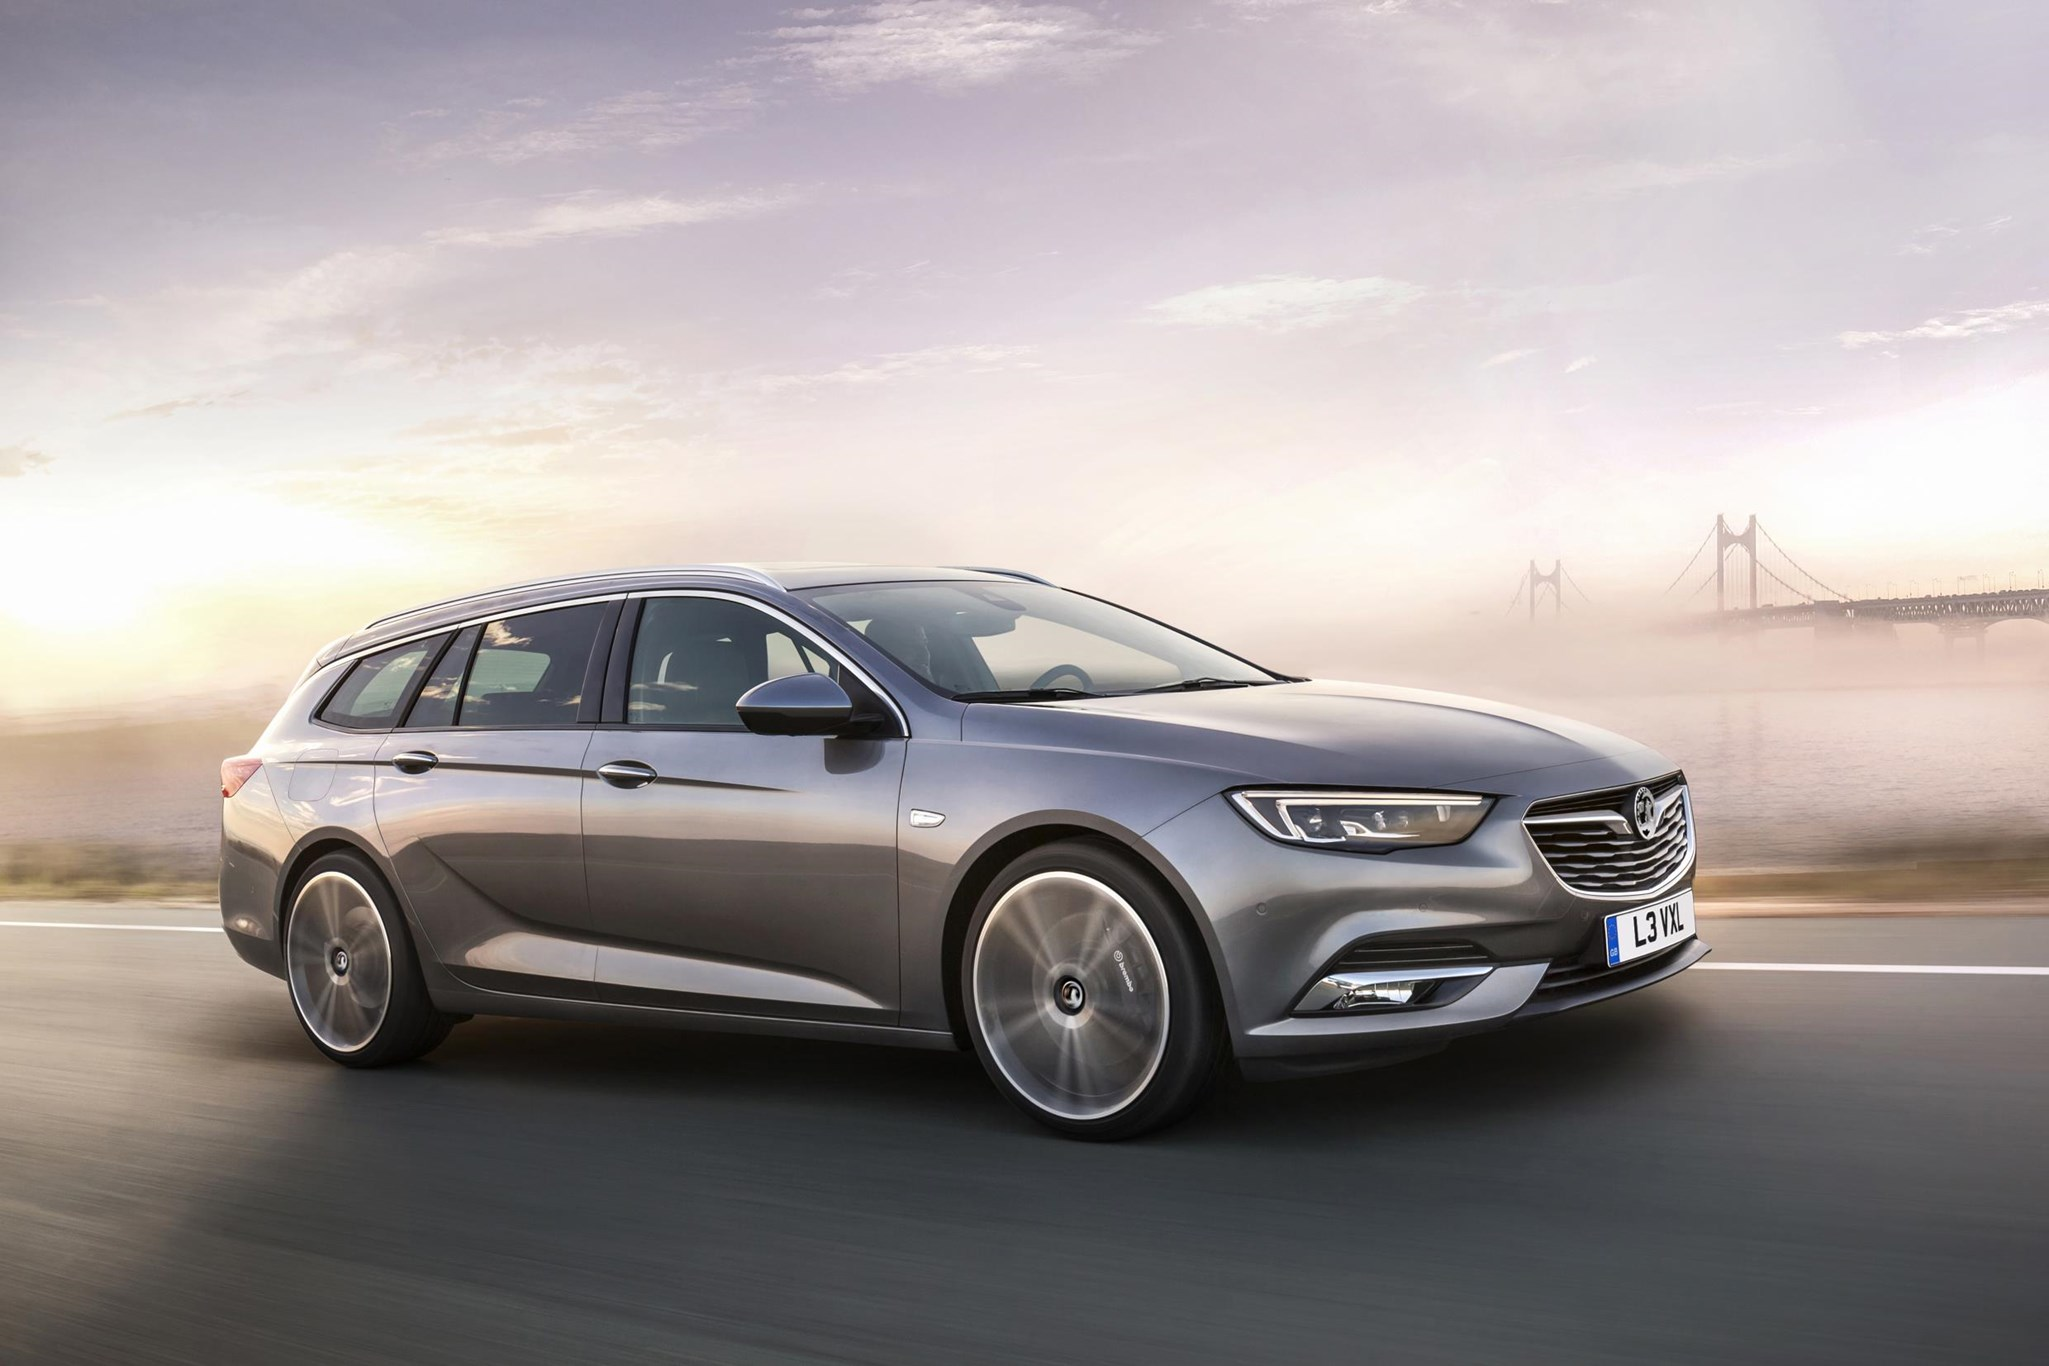 vauxhall insignia sports tourer meet the new 2017 insignia estate by car magazine. Black Bedroom Furniture Sets. Home Design Ideas